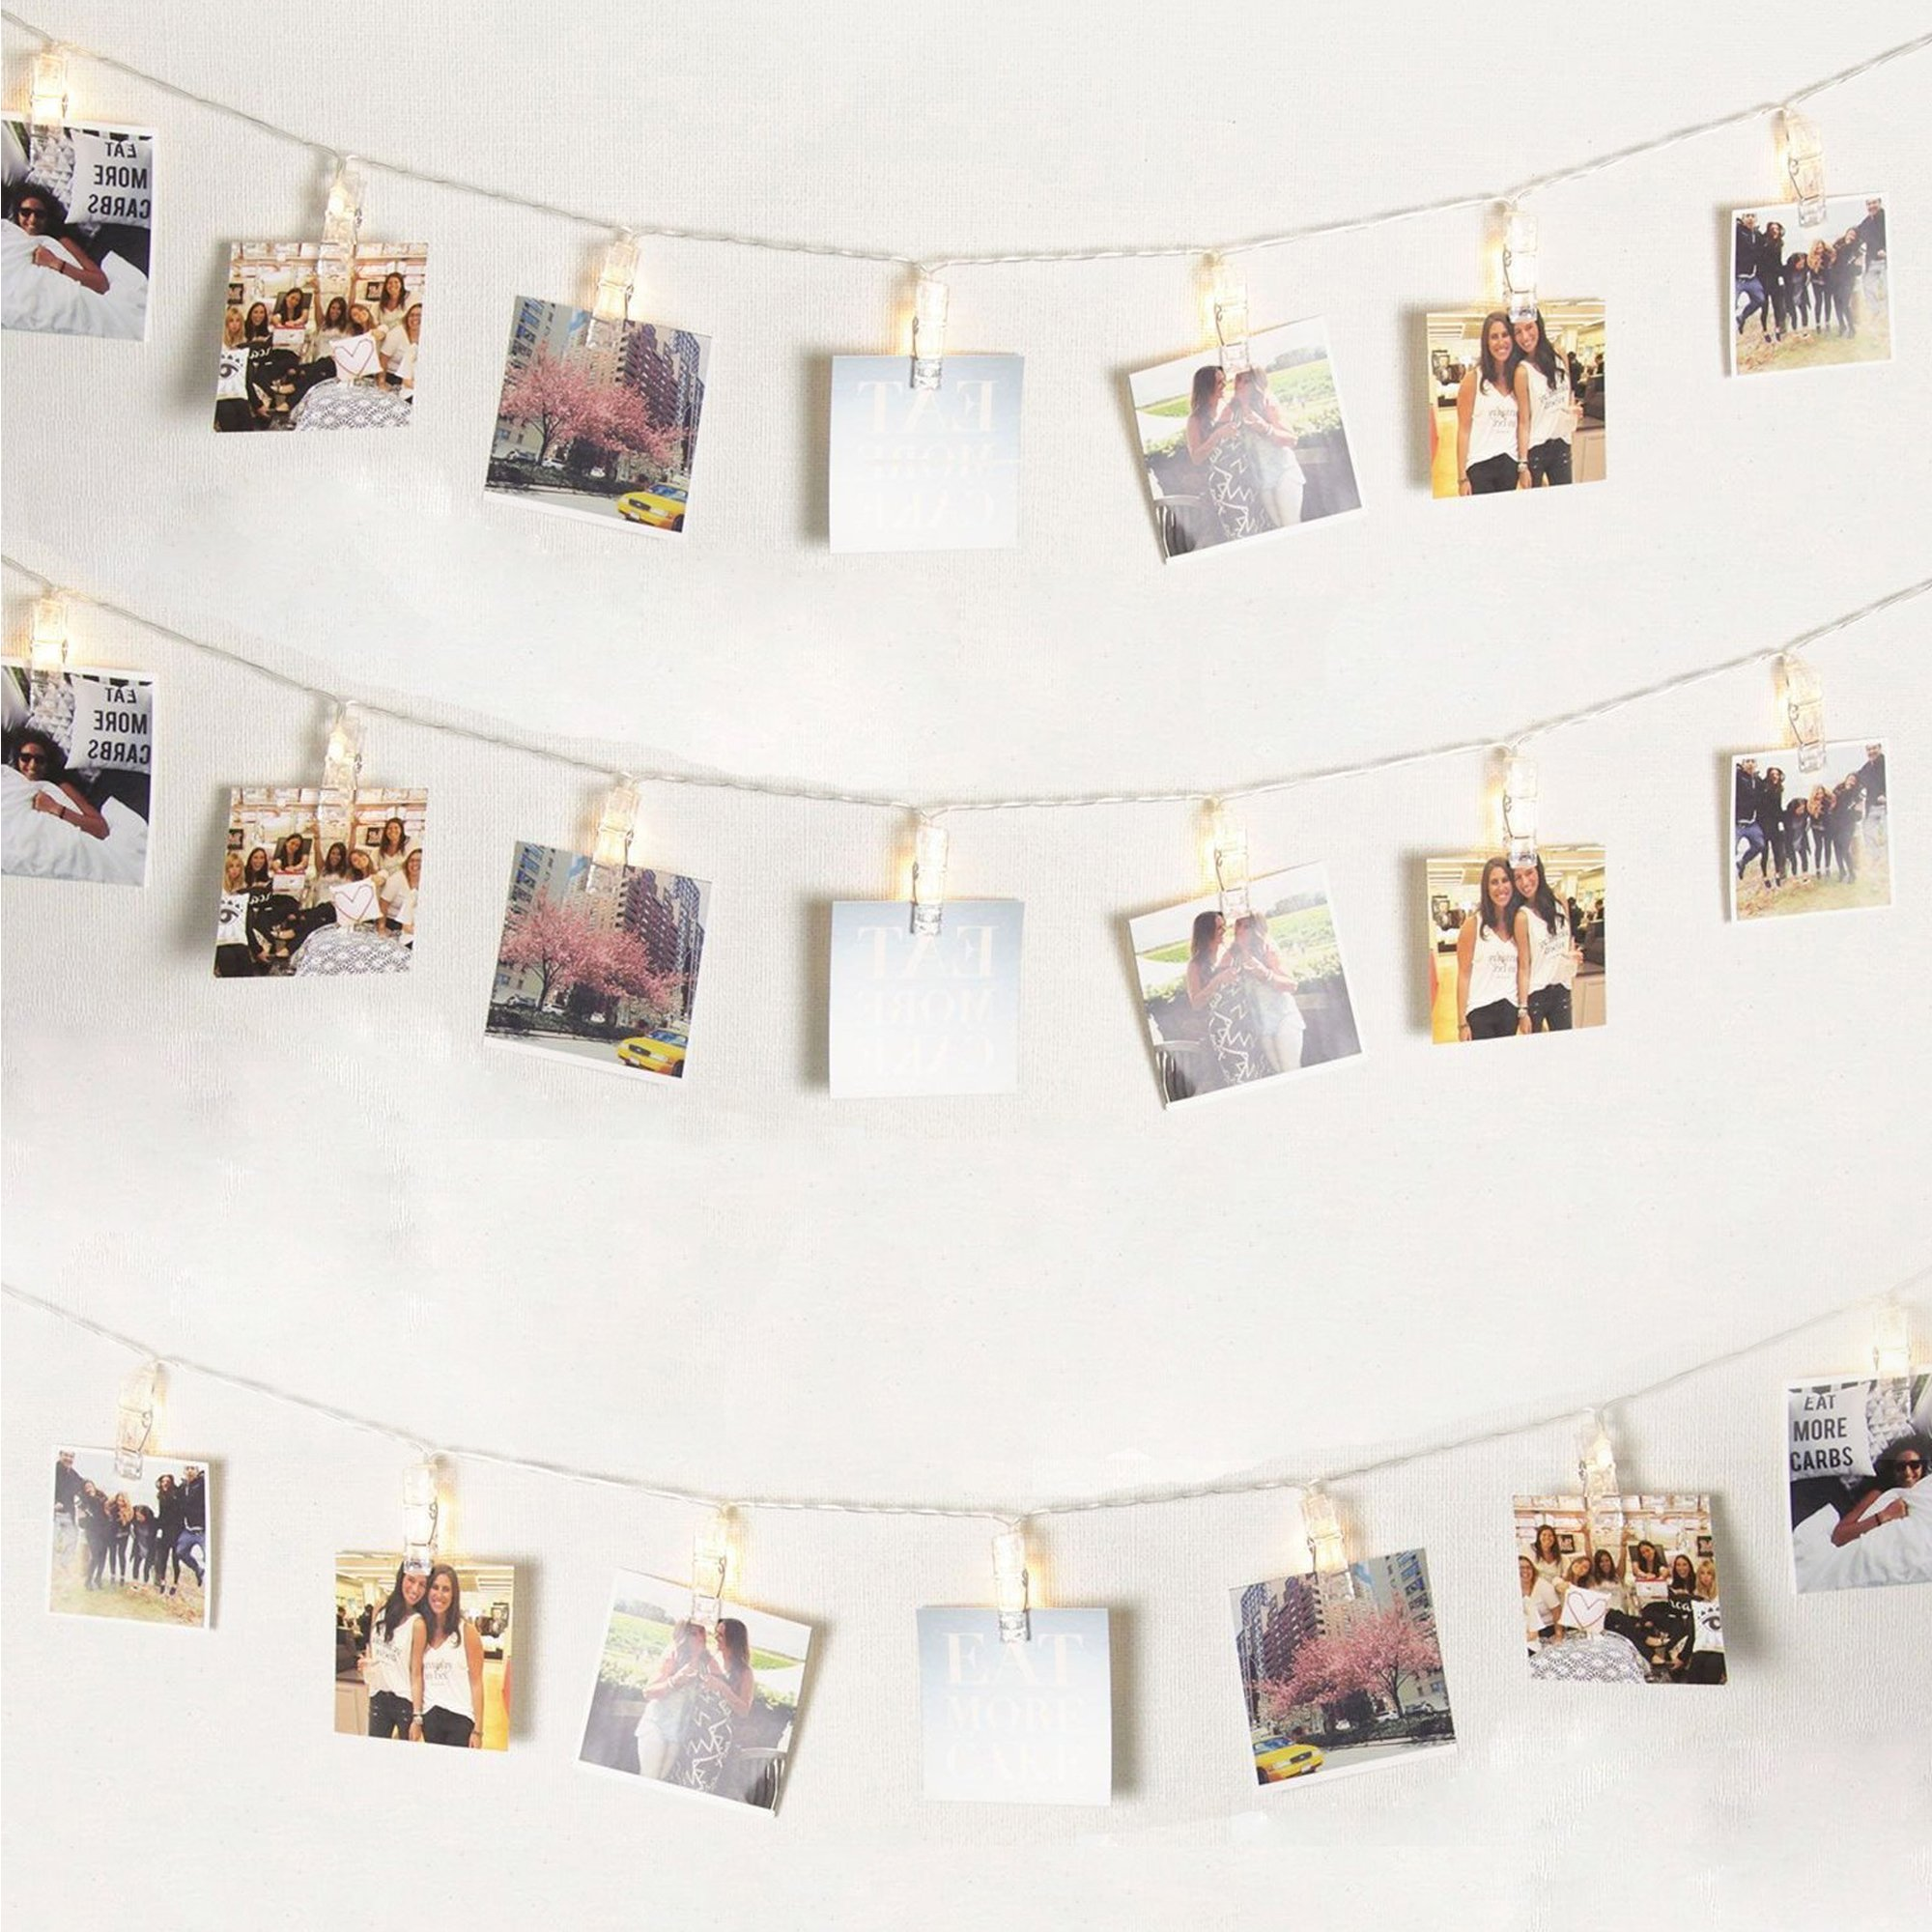 5m Hanging Picture Decoration Fairy Lights 20 Photo Clips String Lights in Warm White for Birthday Parties & Home Décor by Glift(TM) (Image #6)